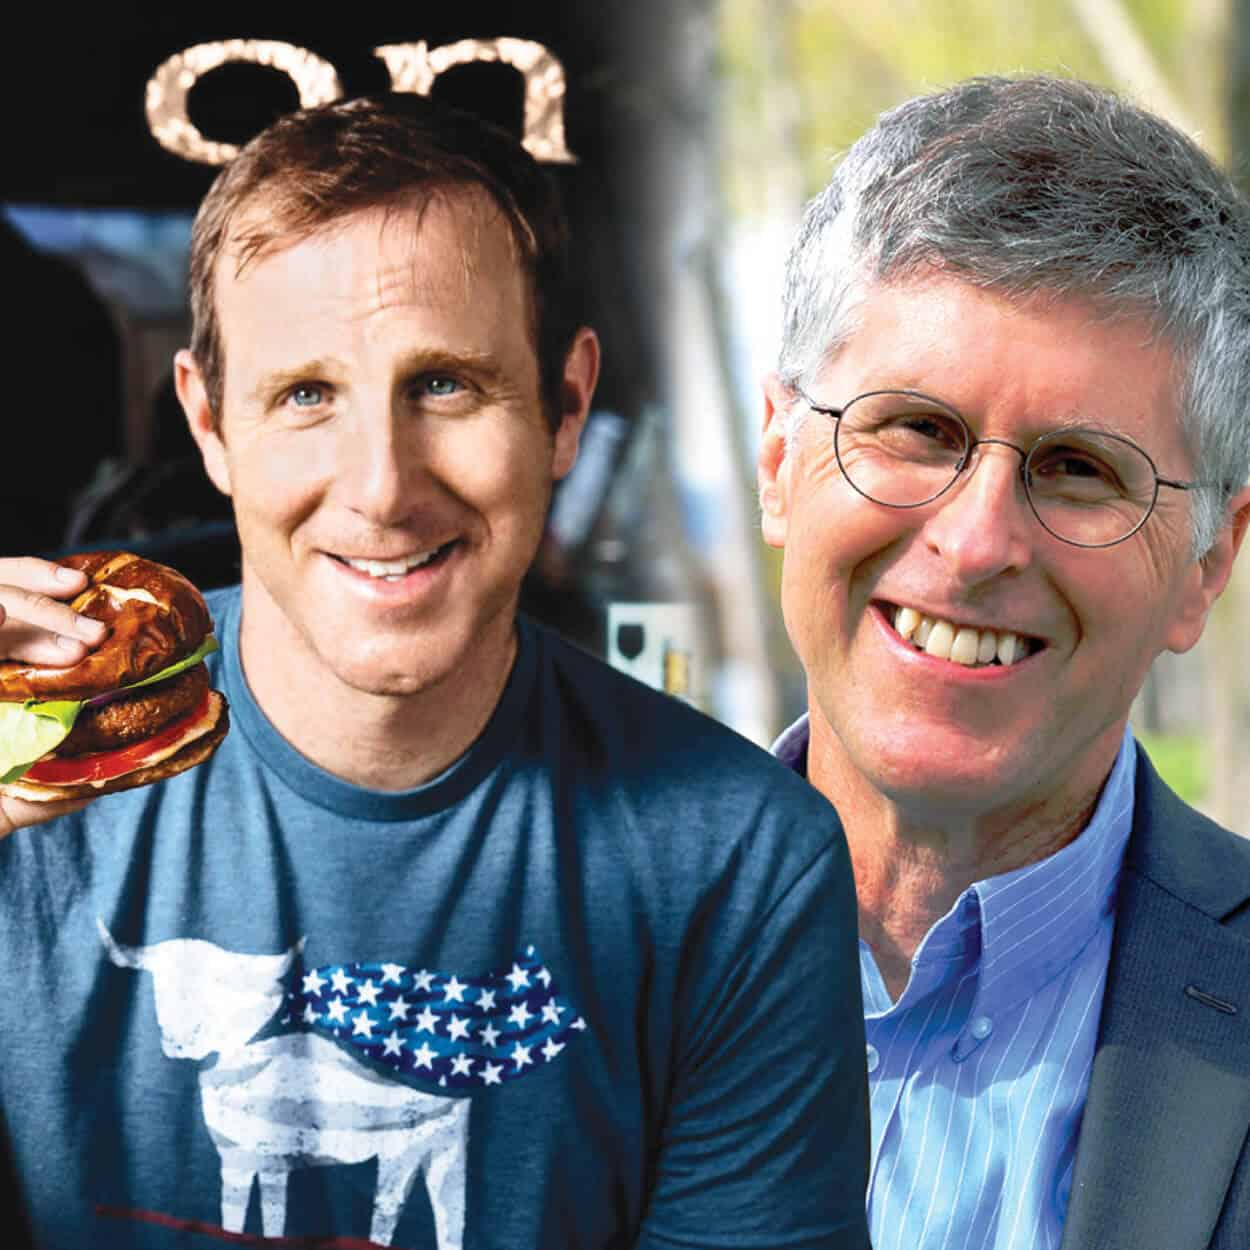 Beyond Meat and Impossible Foods